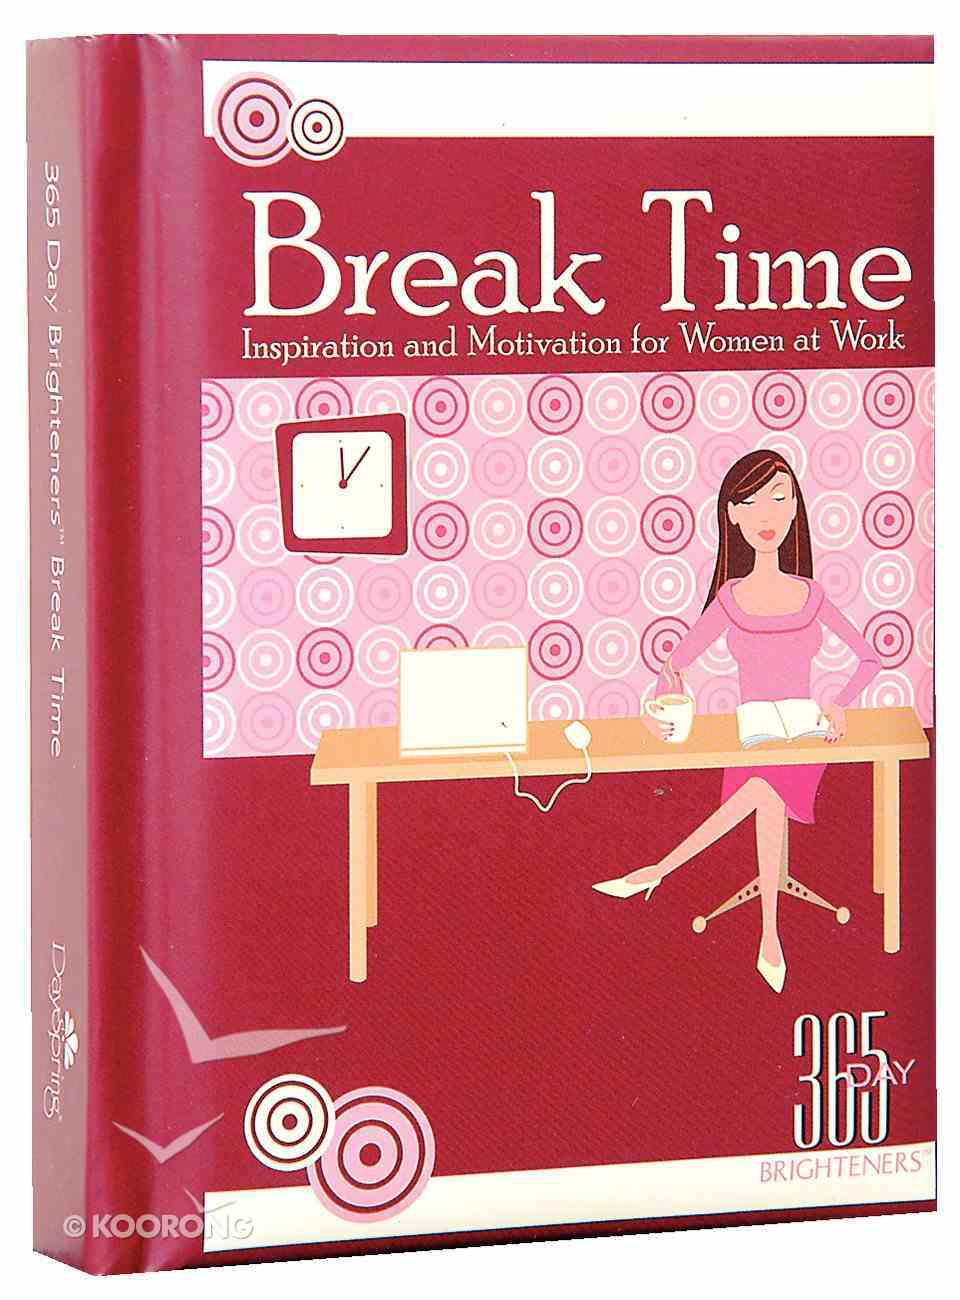 Break Time (365 Day Brighteners Series) Hardback